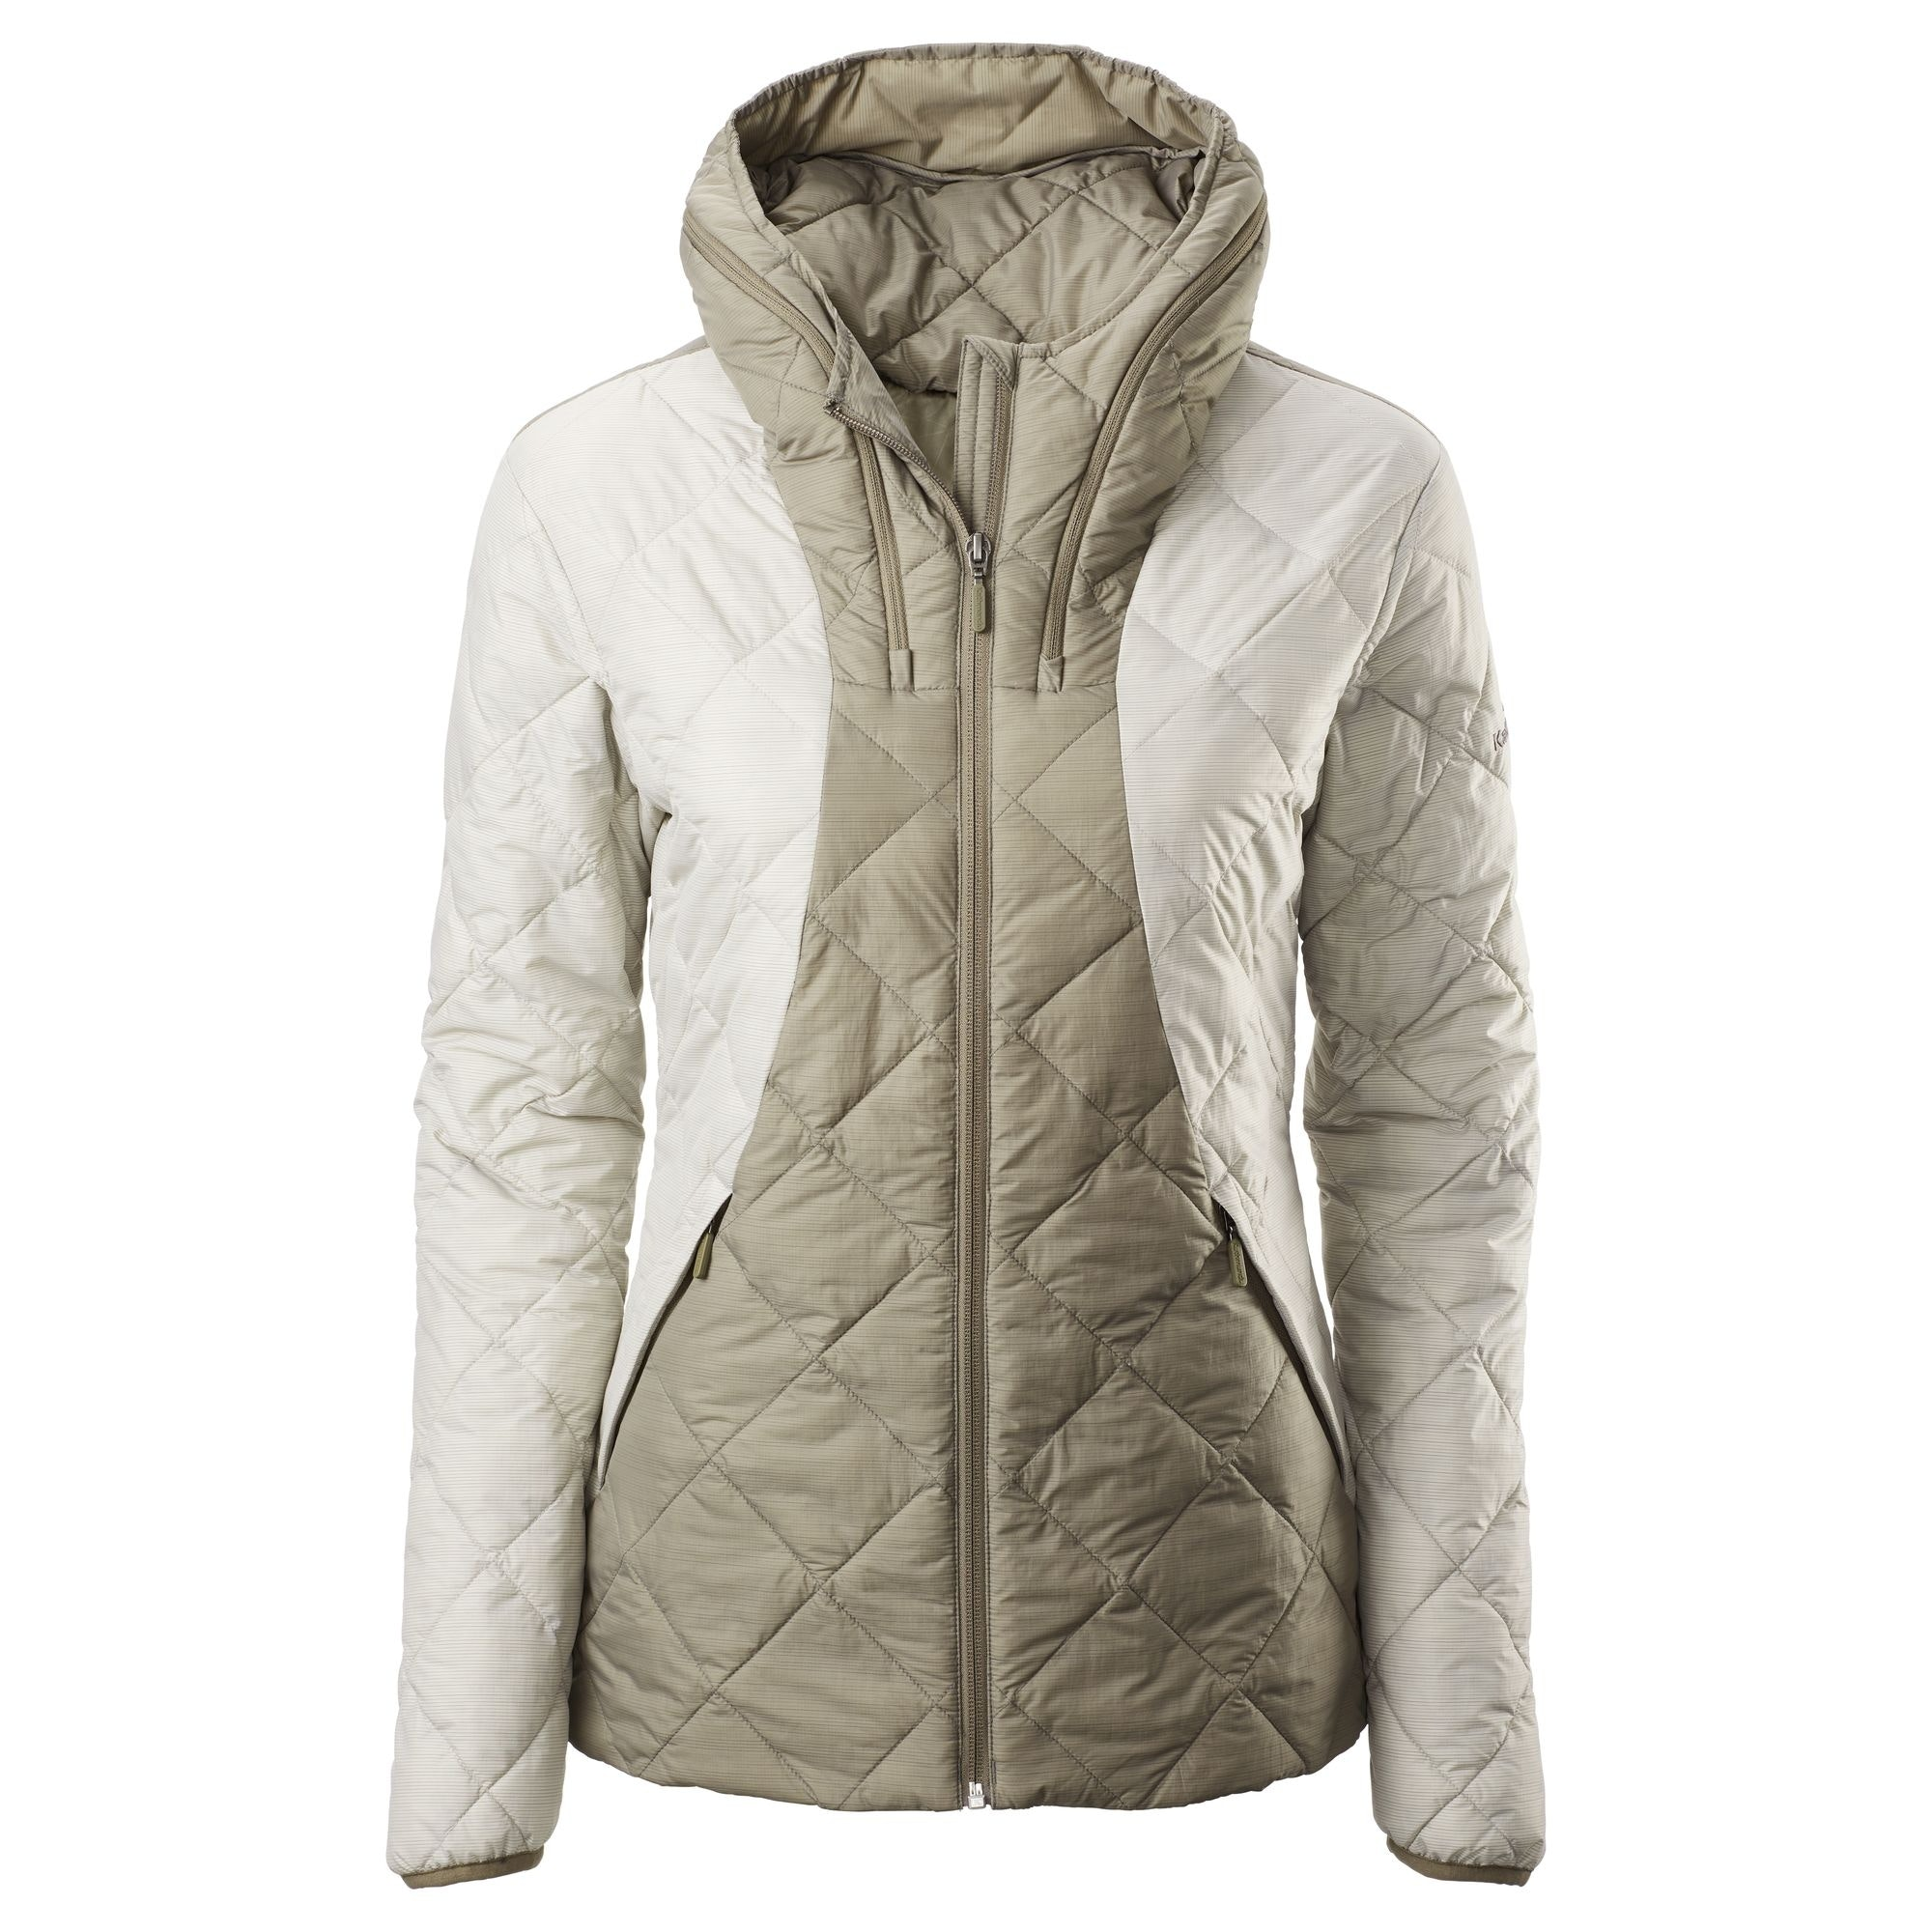 newest 7c560 73759 Lawrence Women's Insulated Jacket